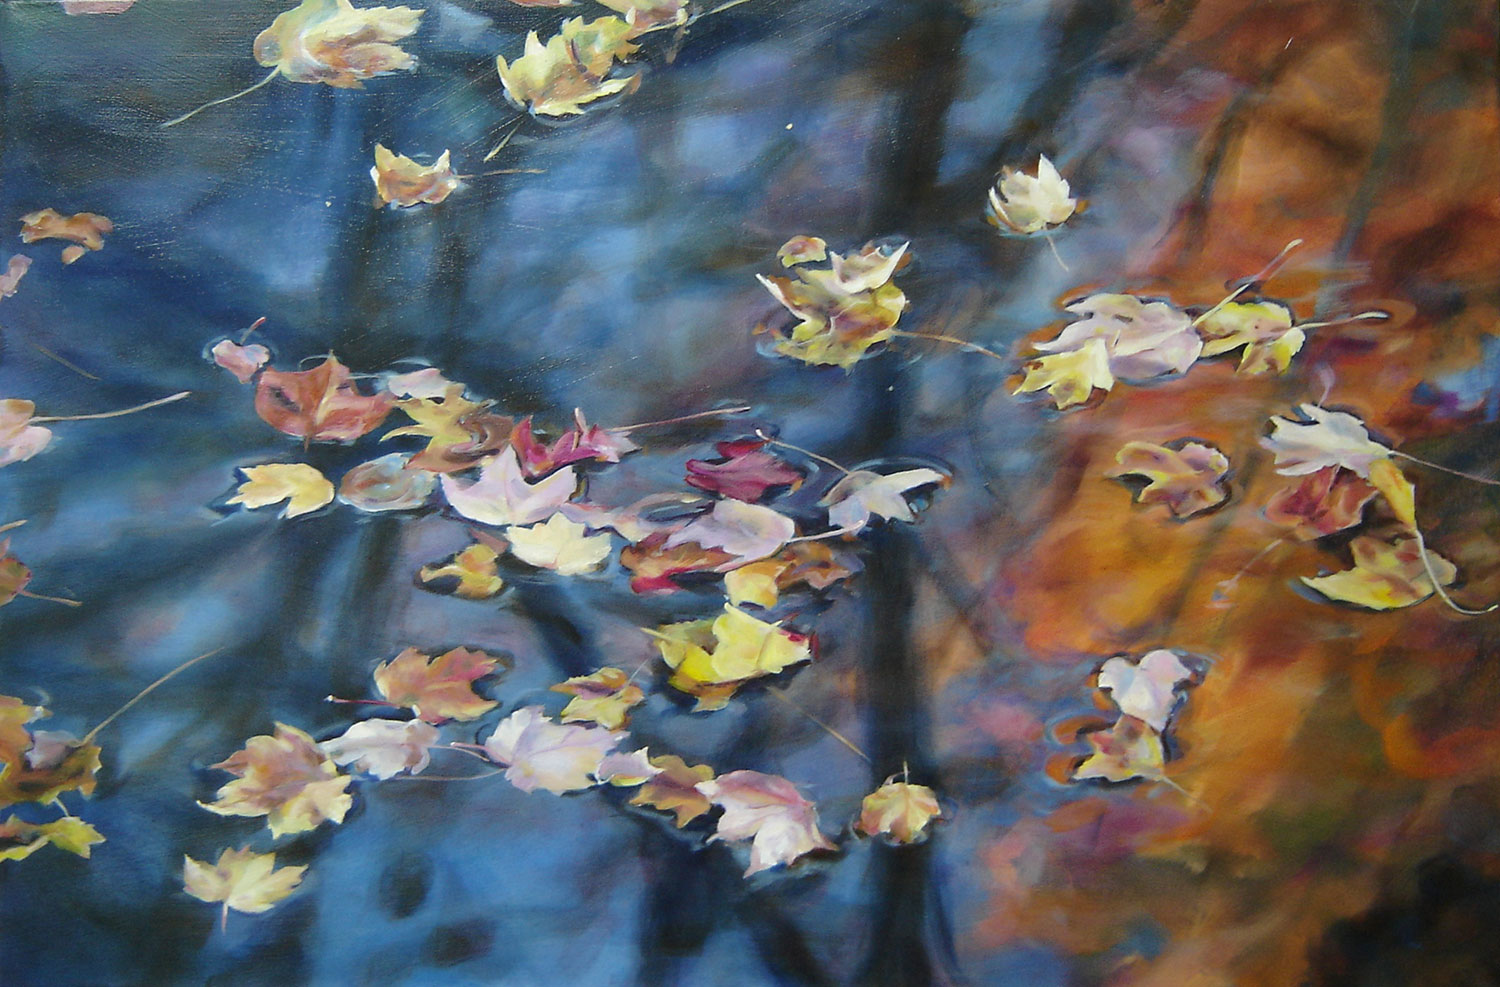 maple leaves on floating on a body of water